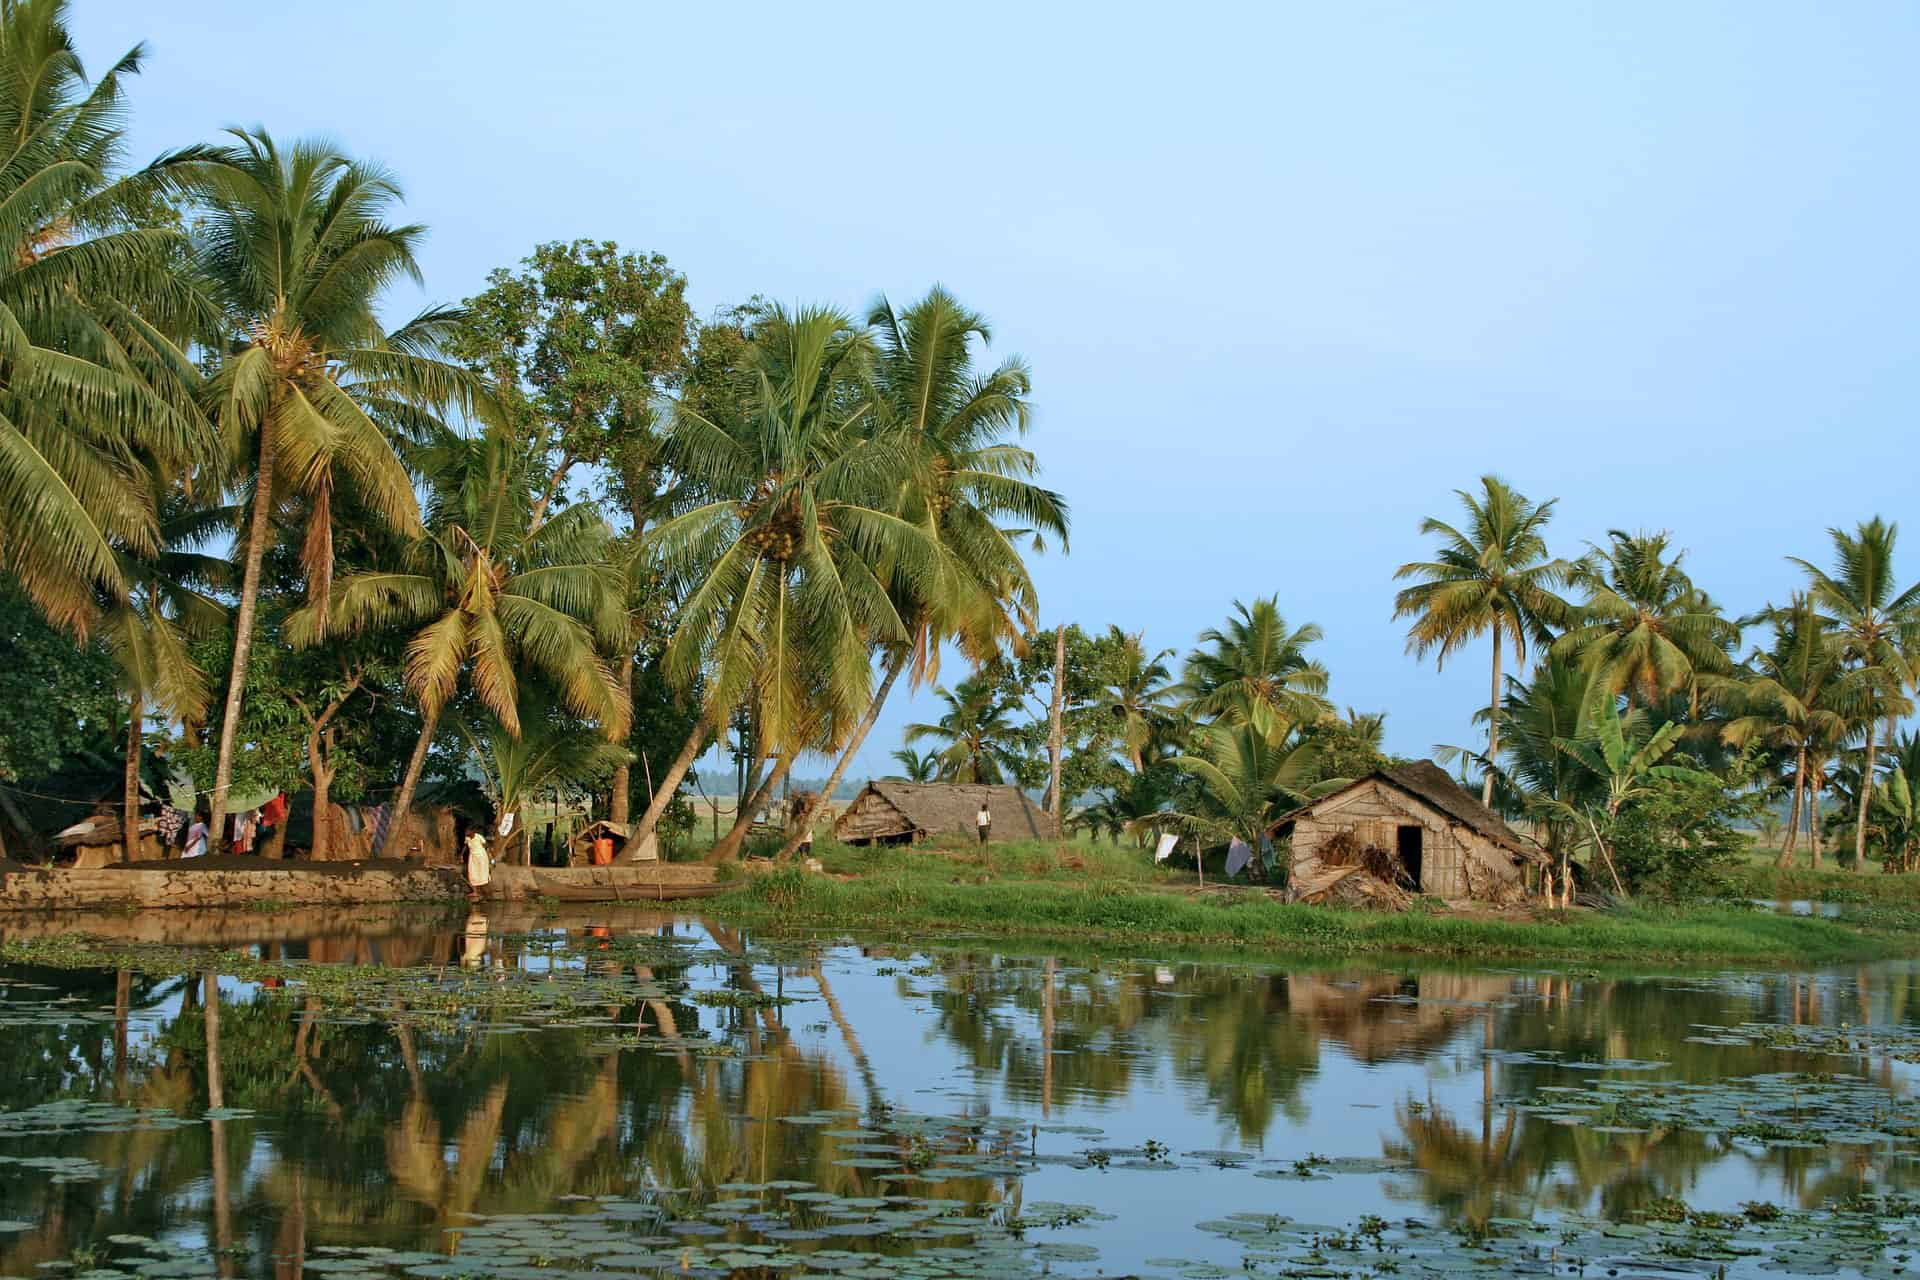 Keralan Backwaters in India